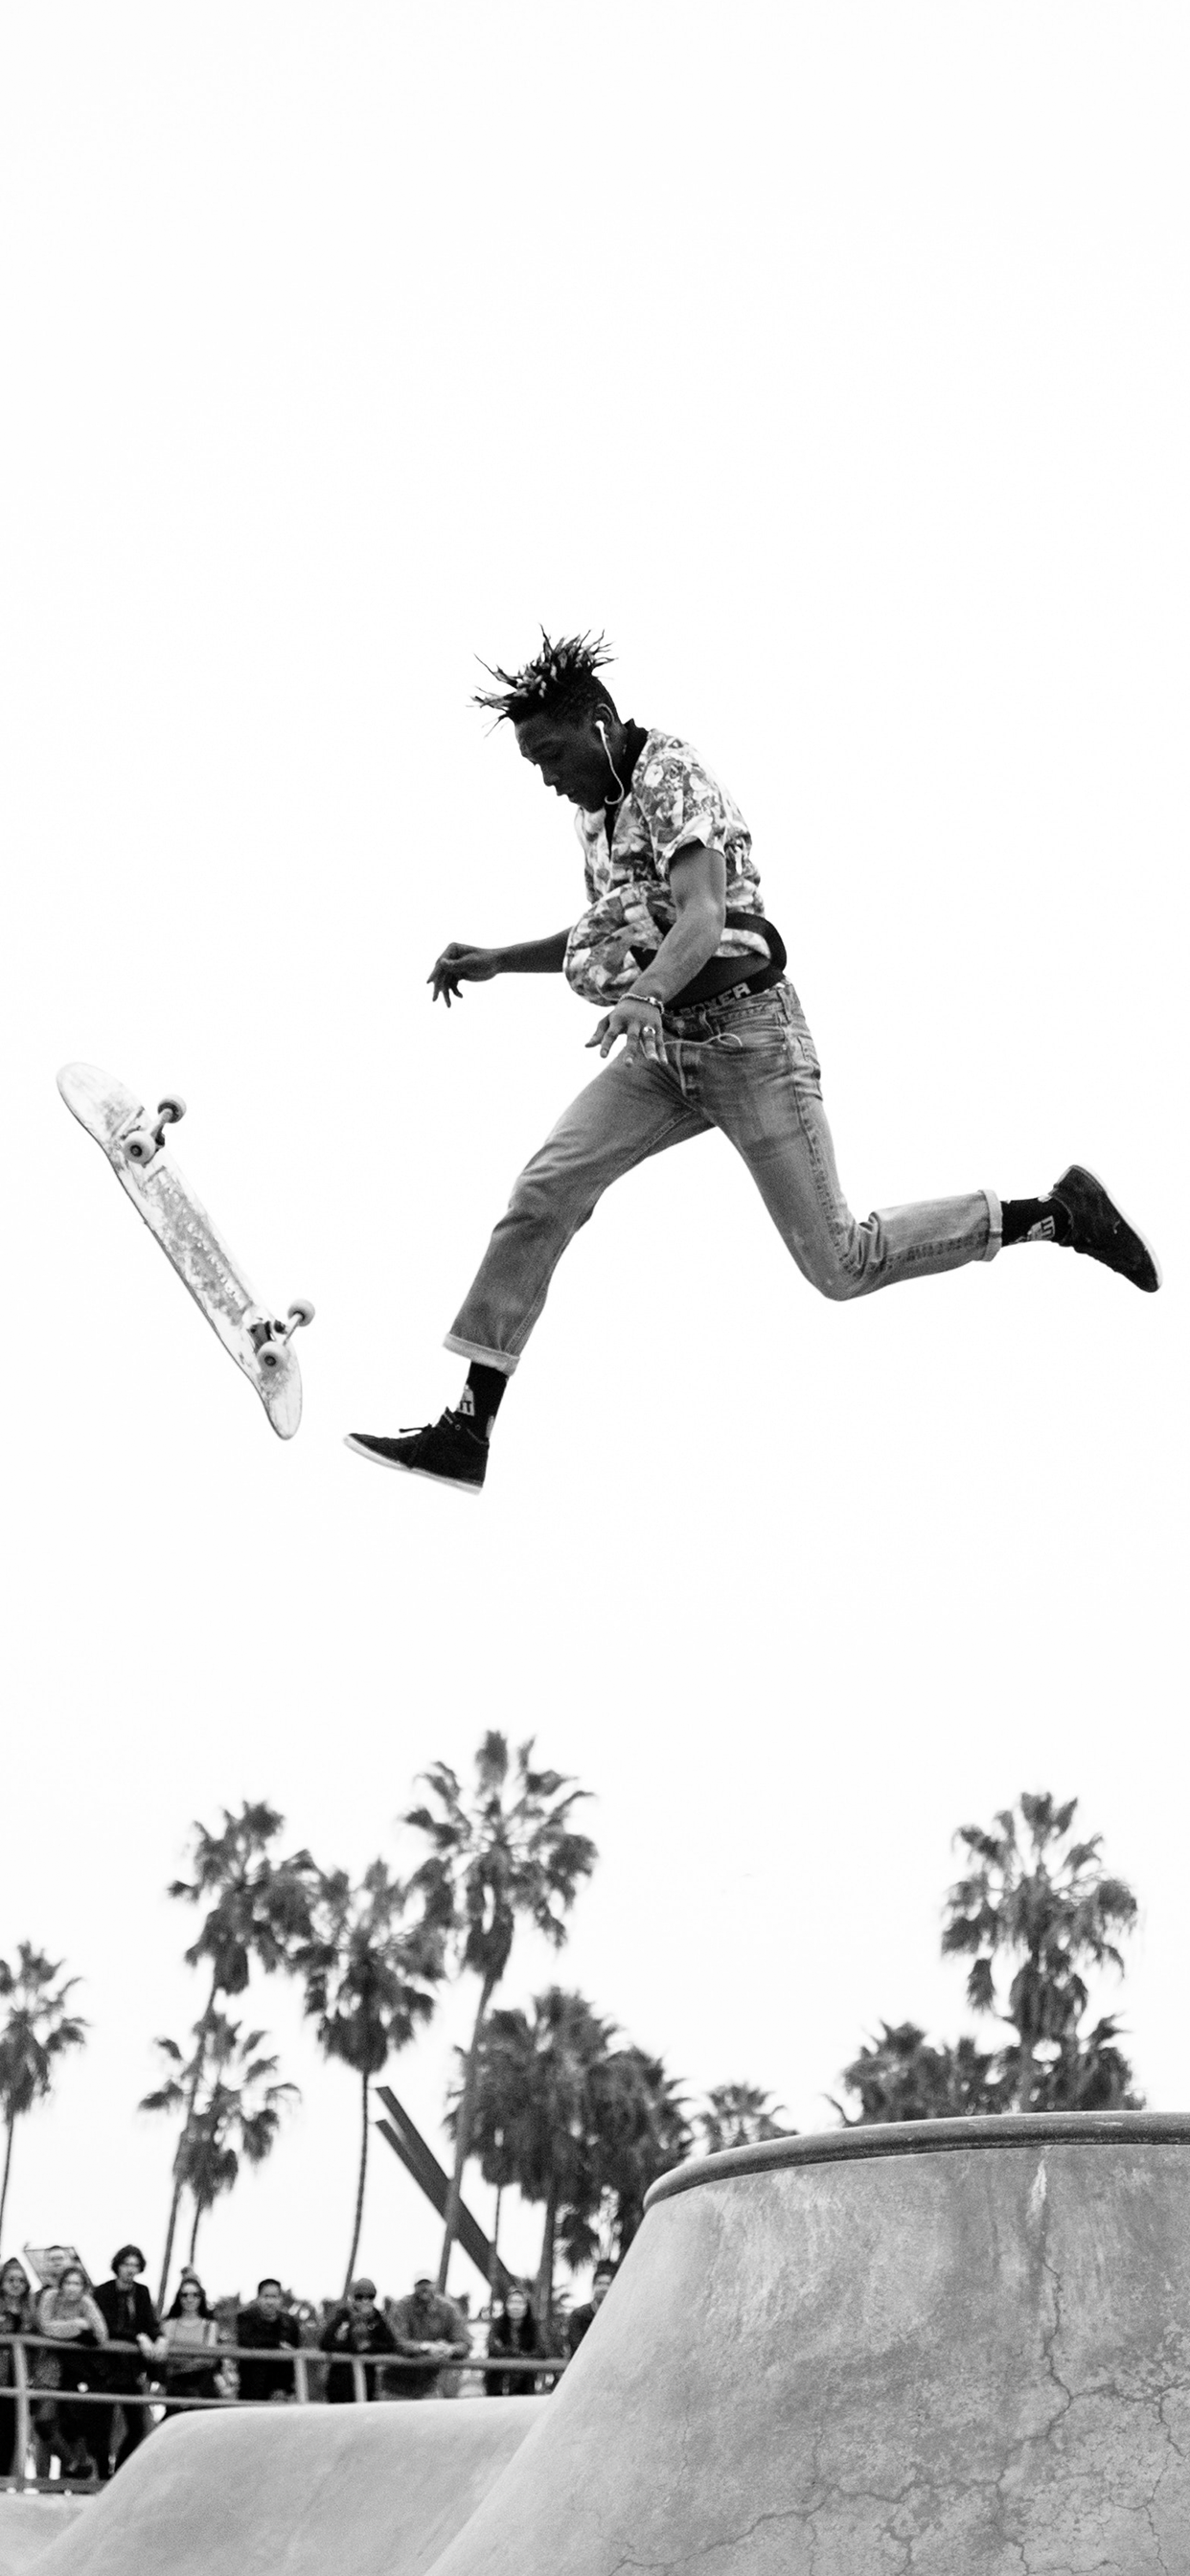 iPhone wallpaper skater black white Fonds d'écran iPhone du 13/12/2018